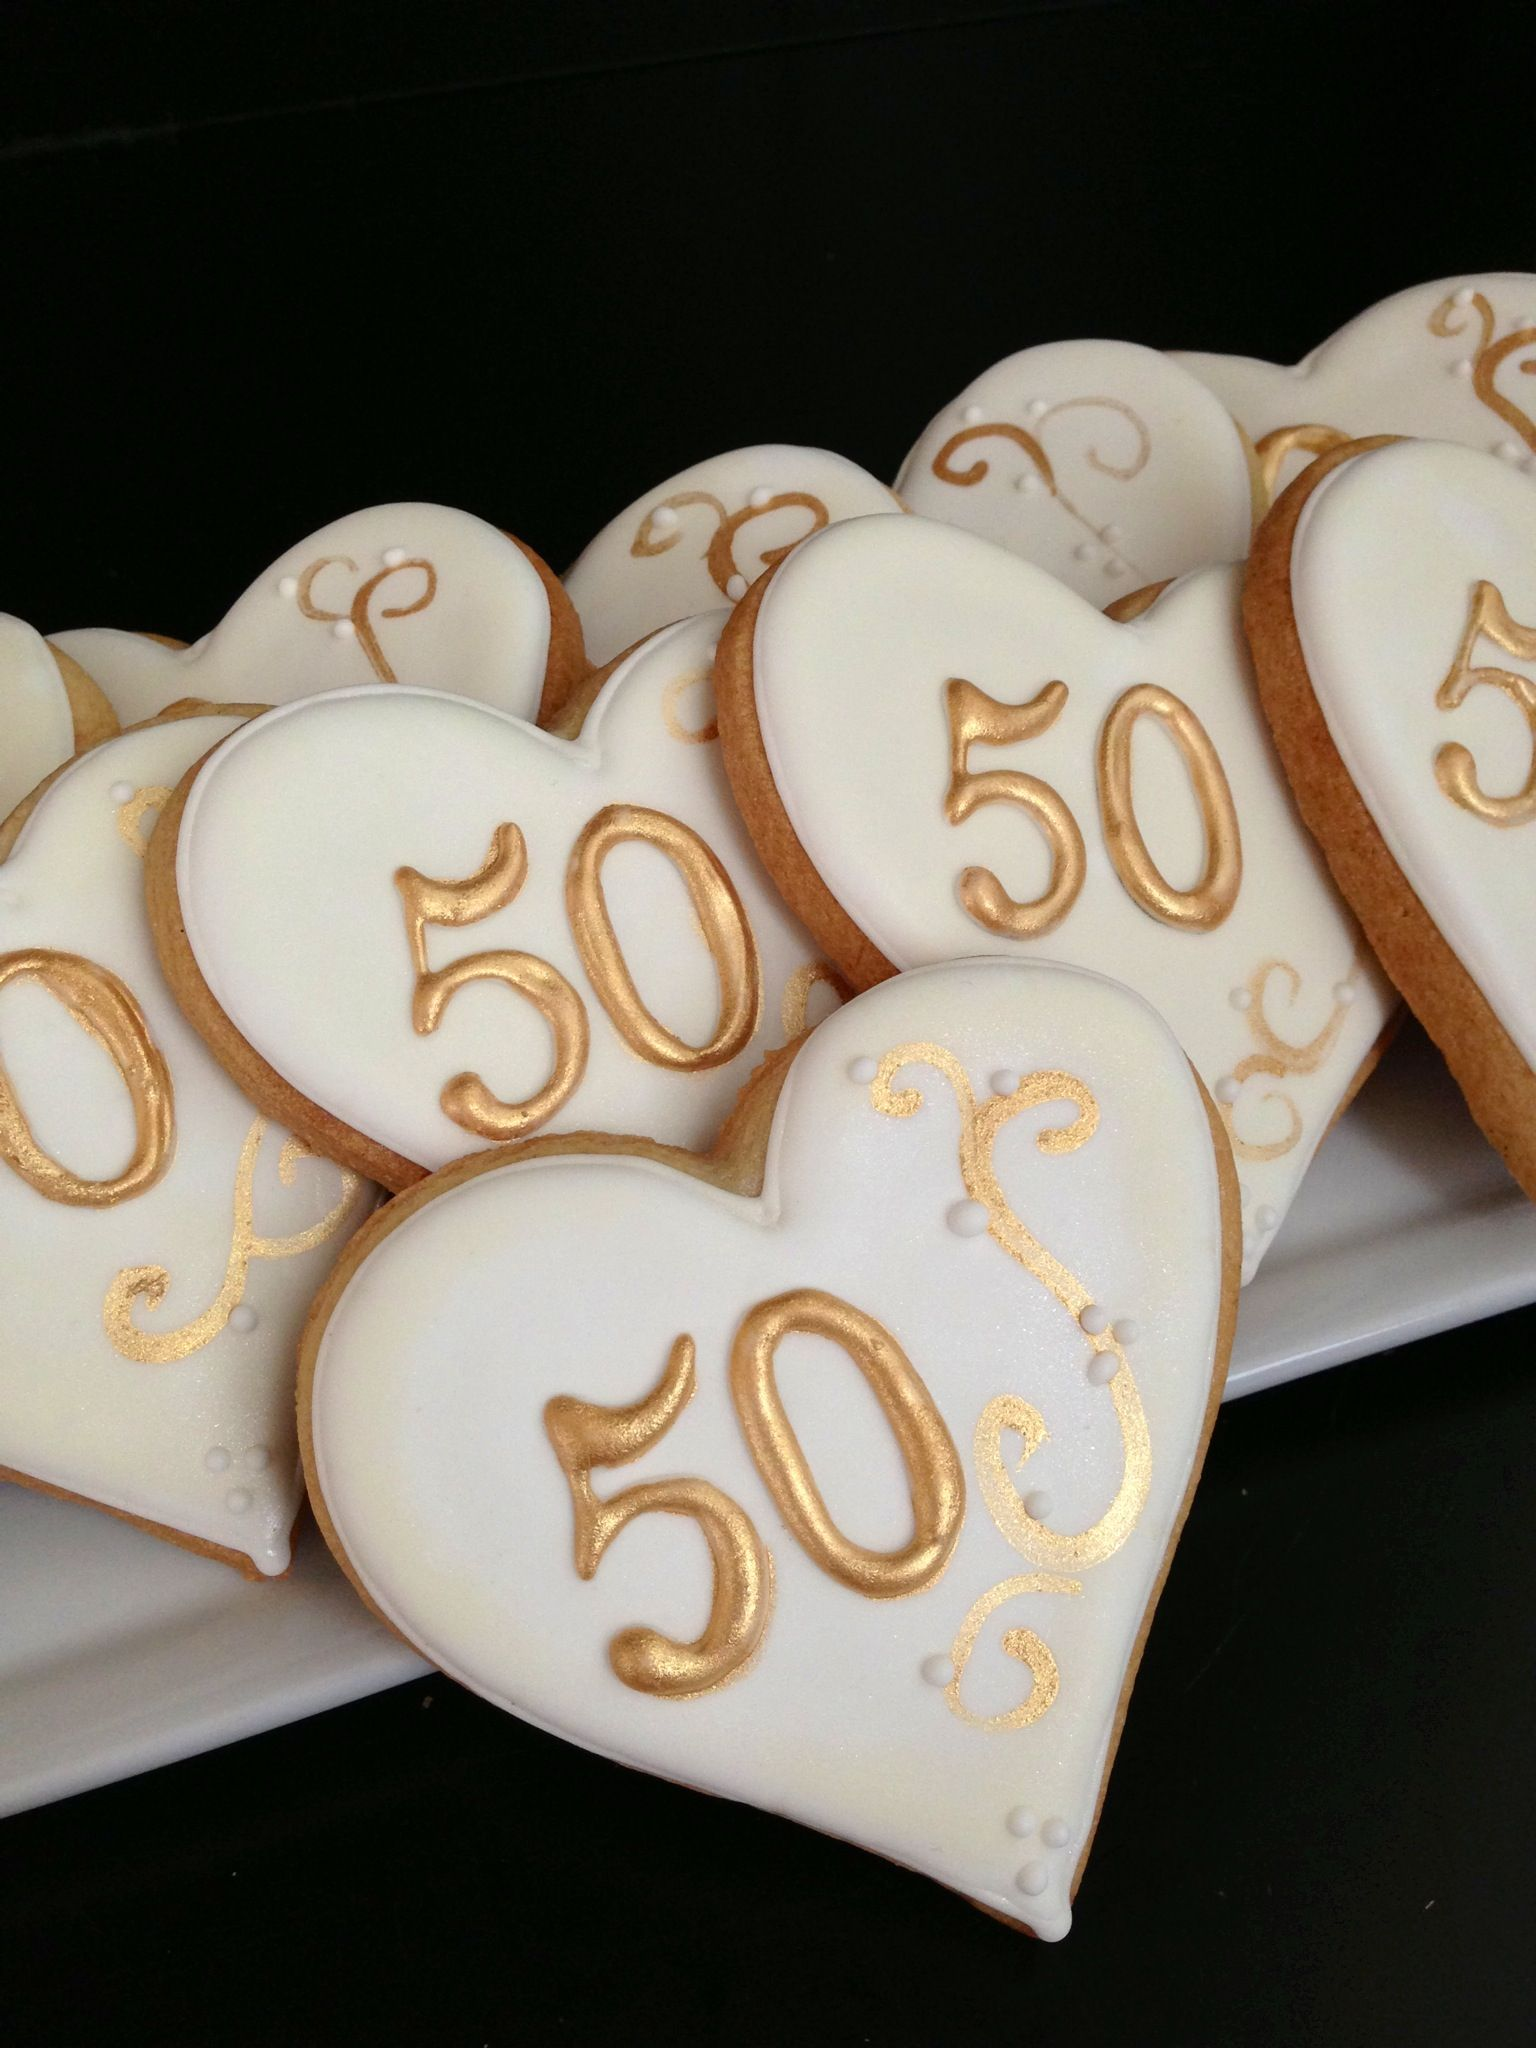 th Anniversary Cookies  Parties  Pinterest  th anniversary